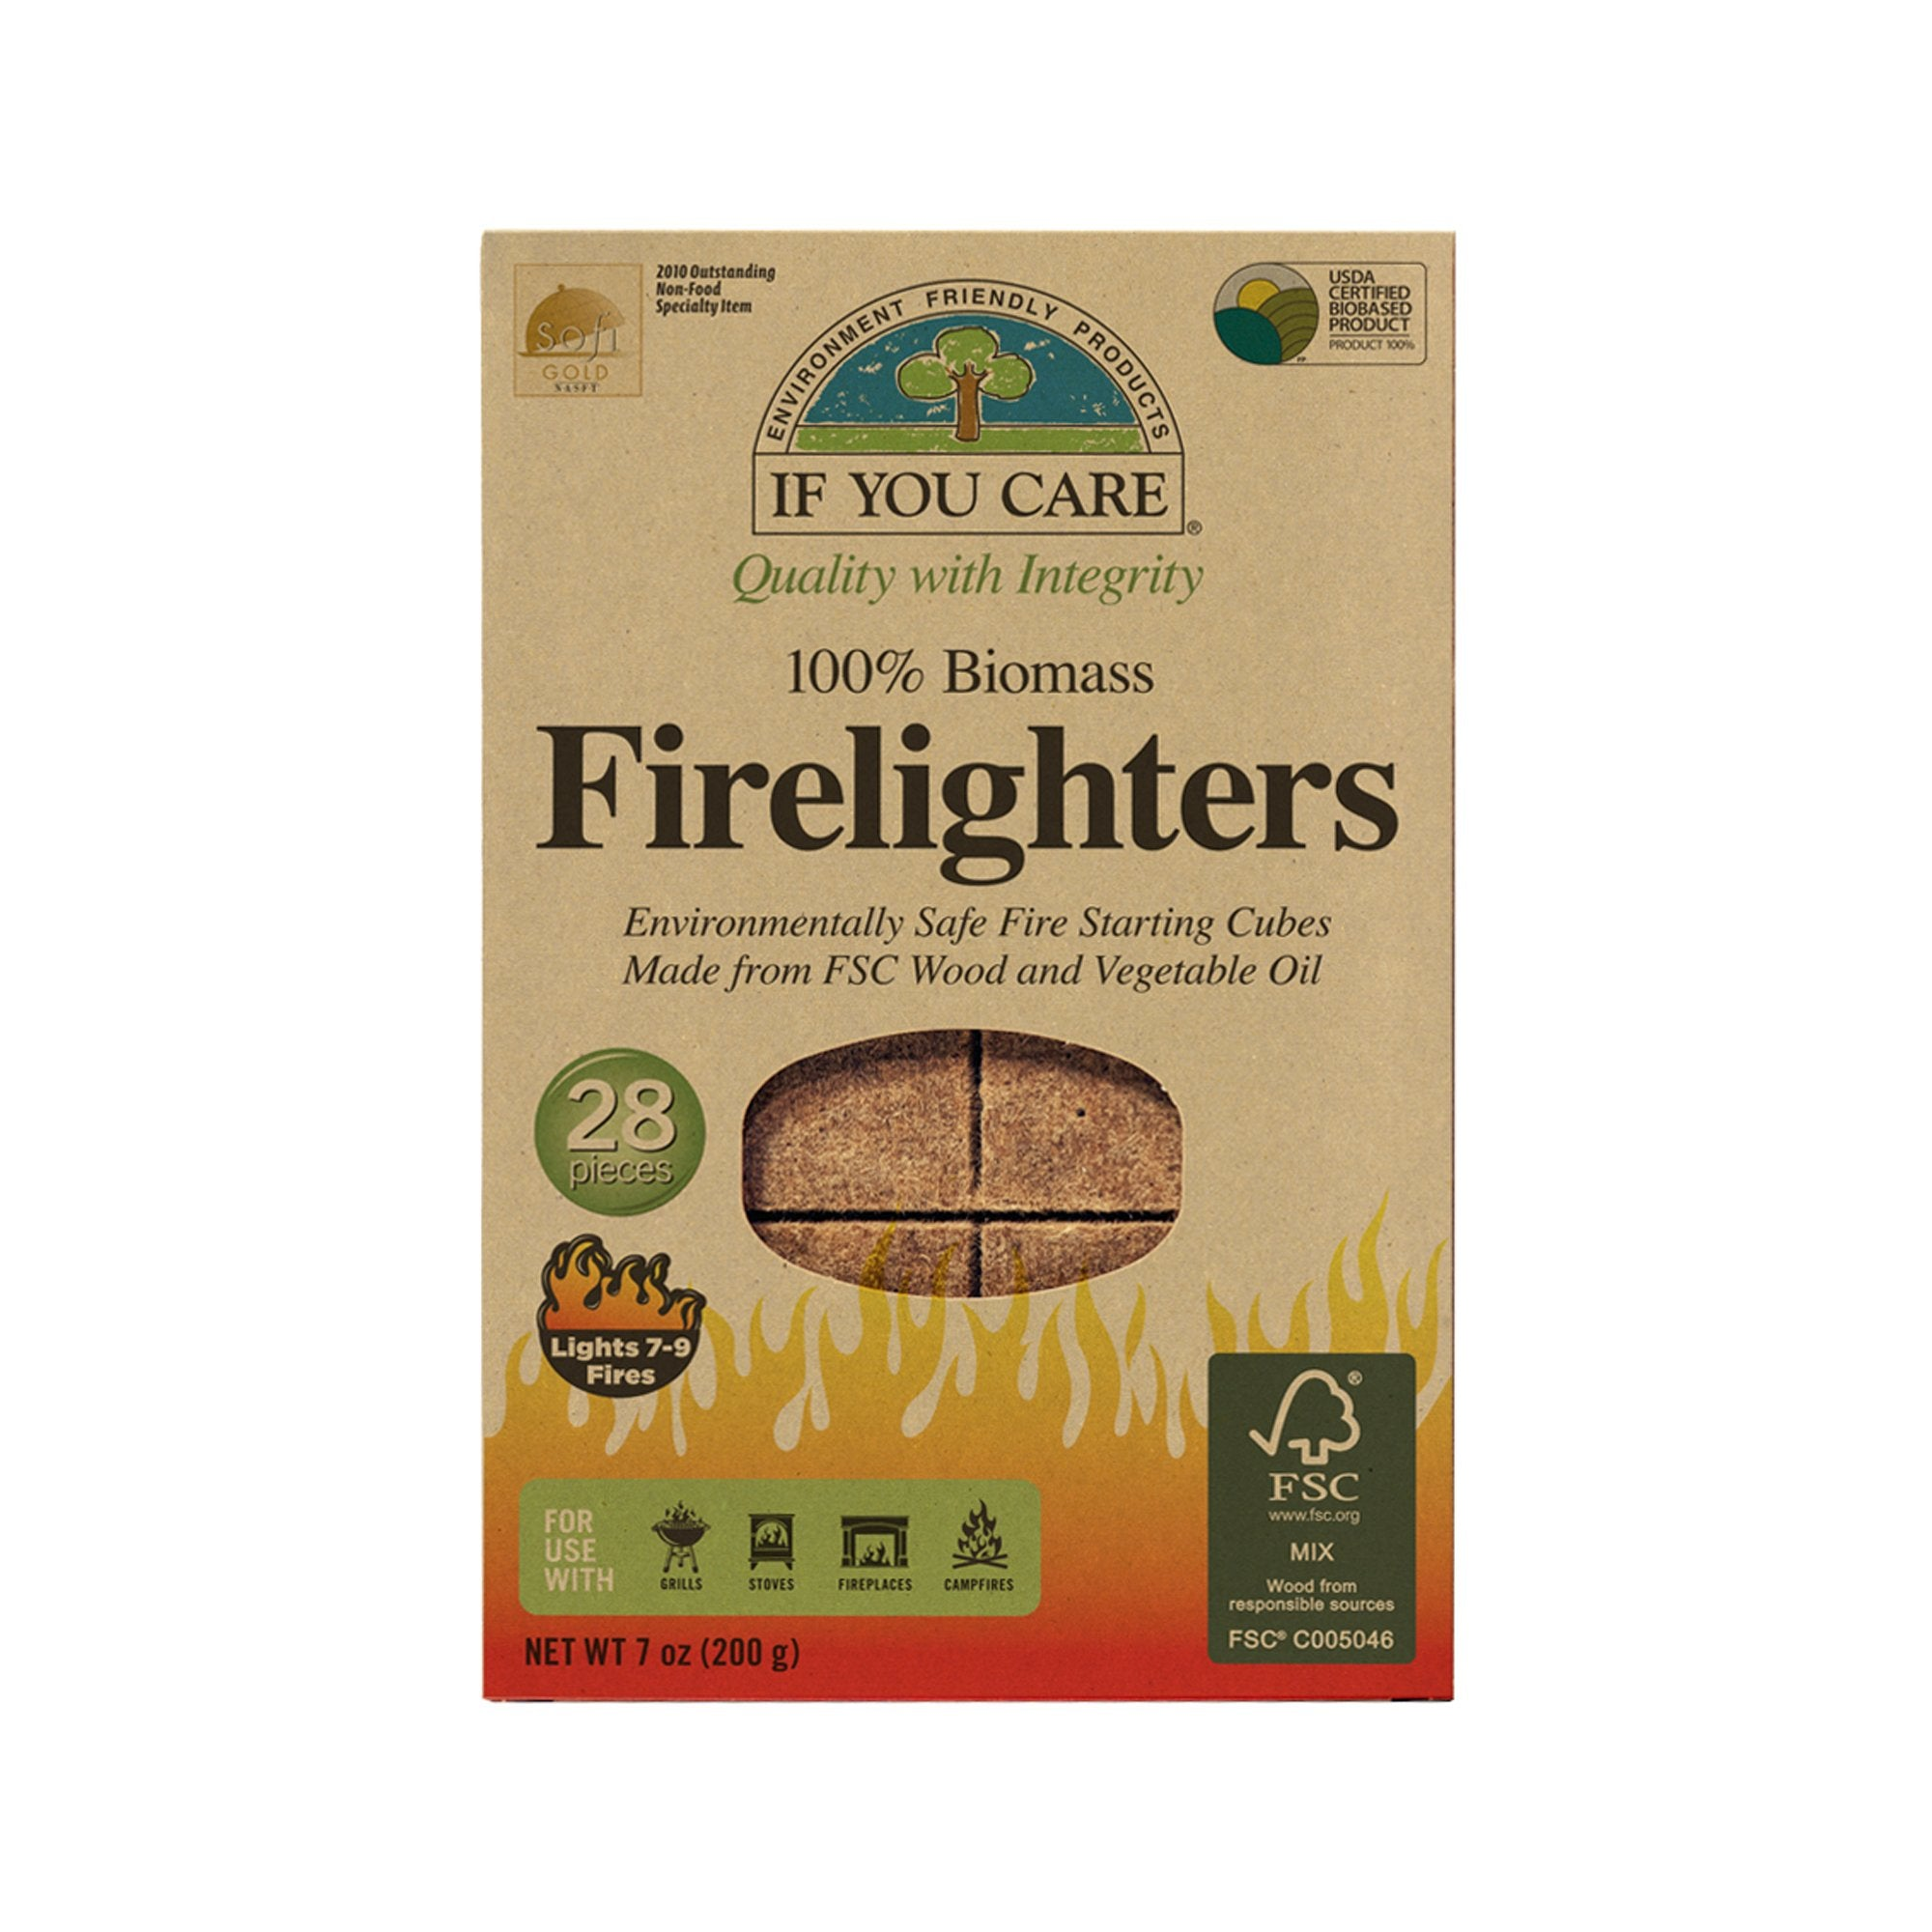 firelighters in package, 28 pieces, Net WT 7 oz